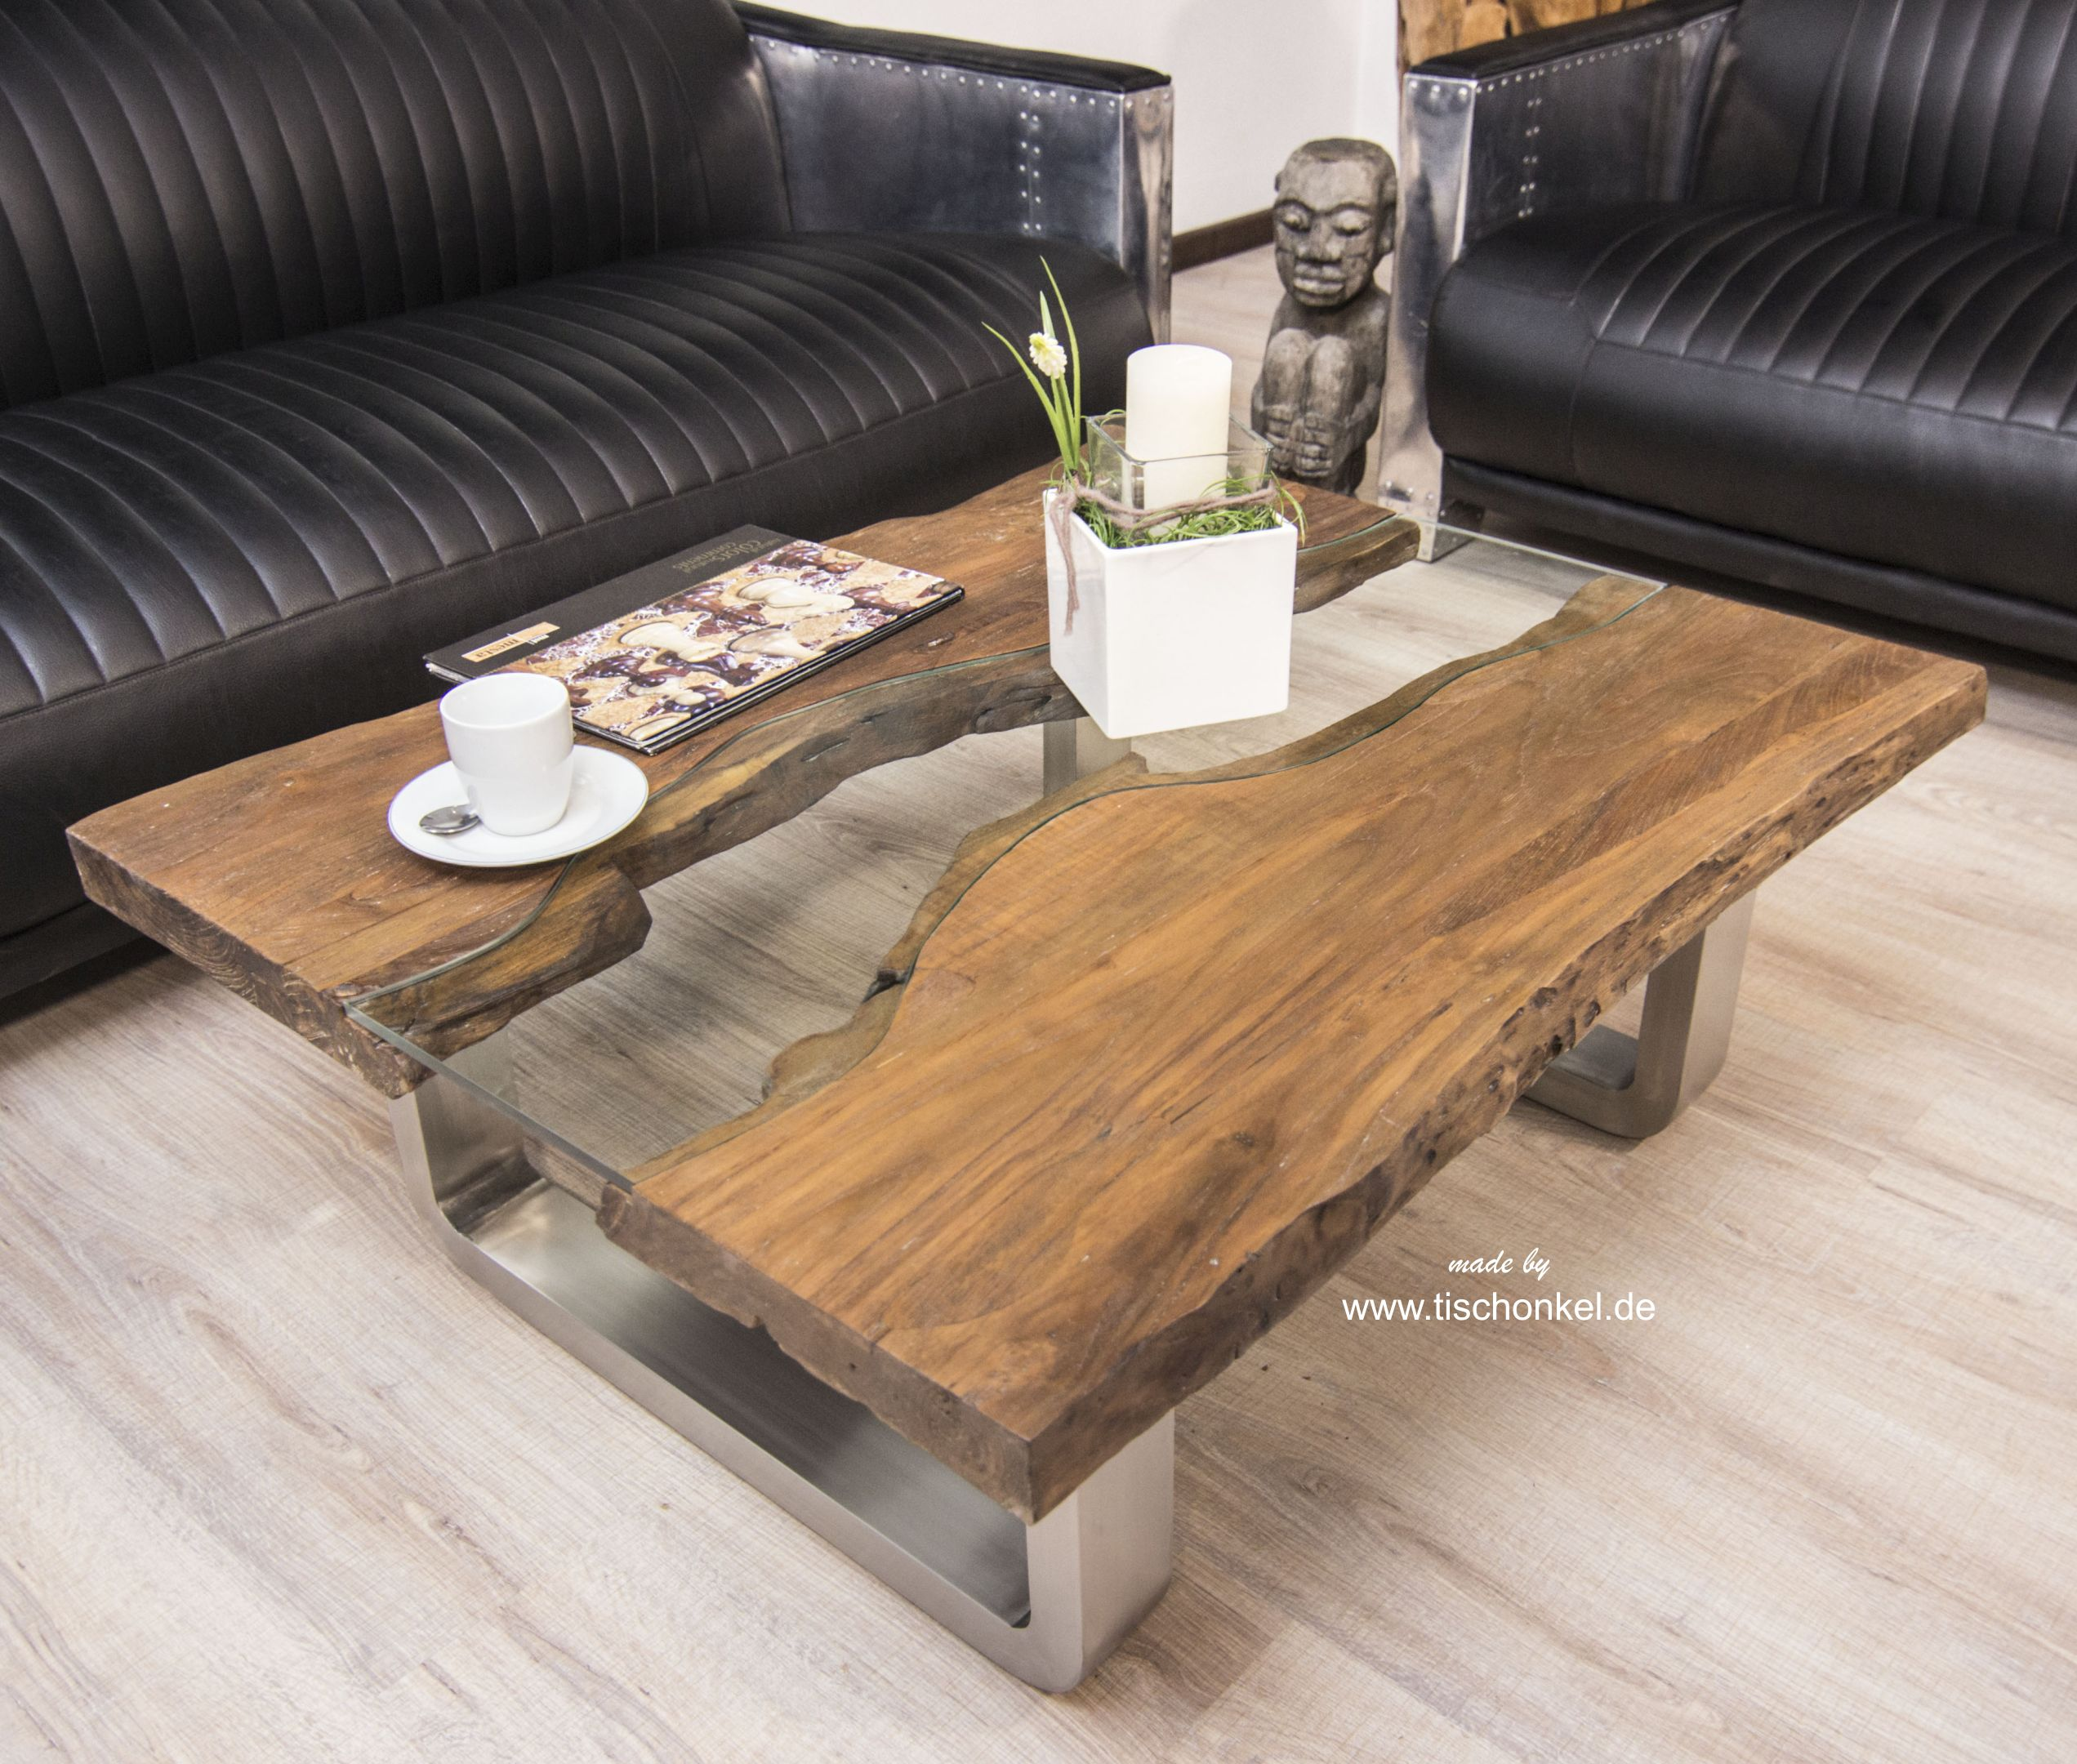 couchtisch vintage wood. wood coffee table from cable reel build